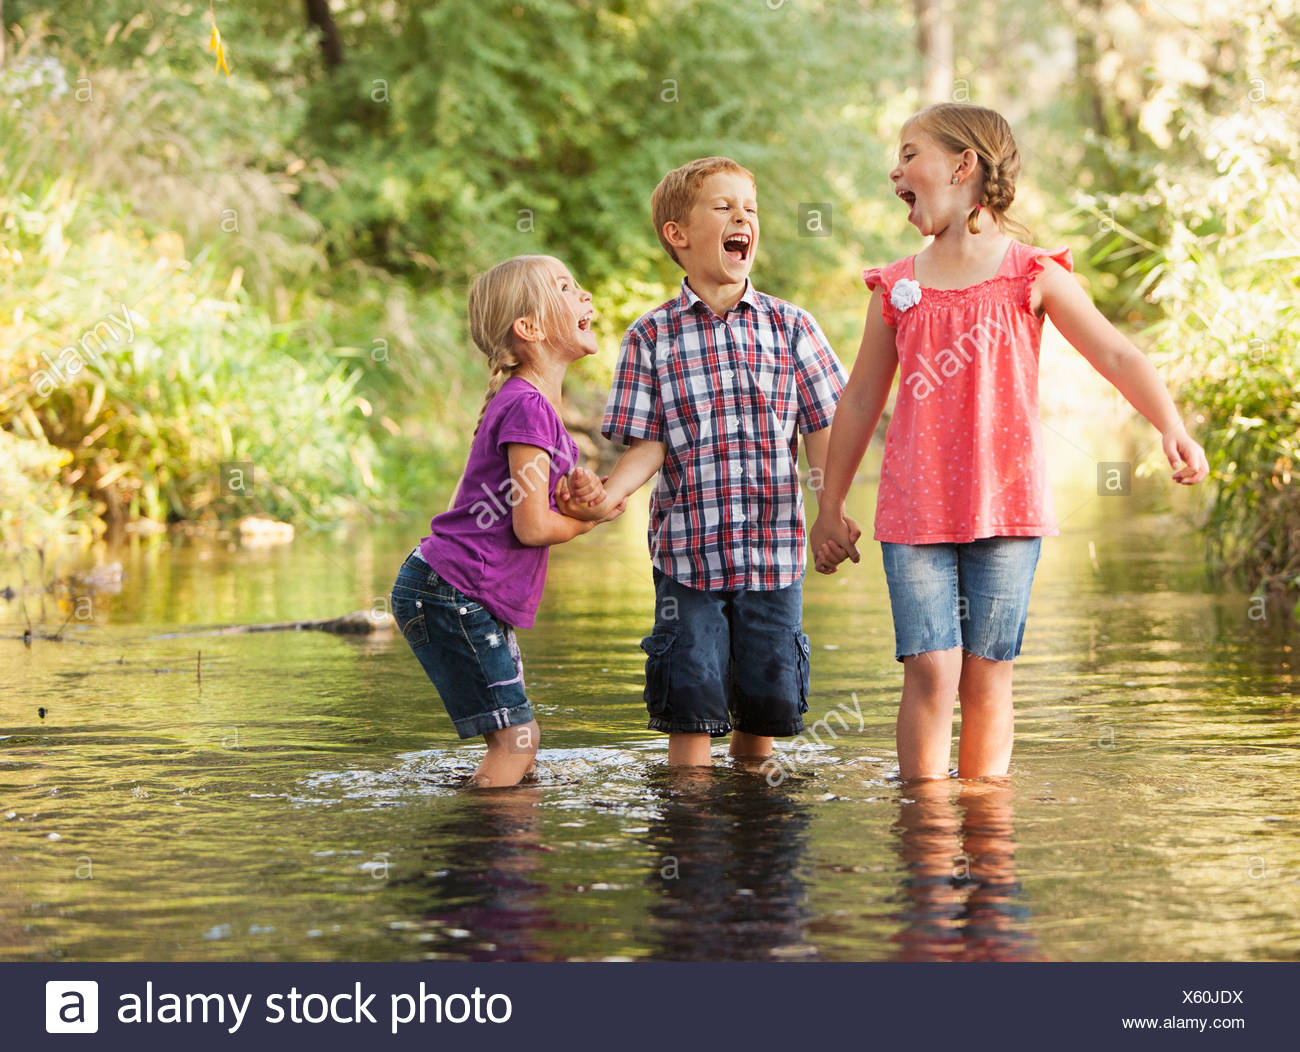 USA, Utah, Lehi, Three kids (4-5, 6-7) playing together in small stream - Stock Image